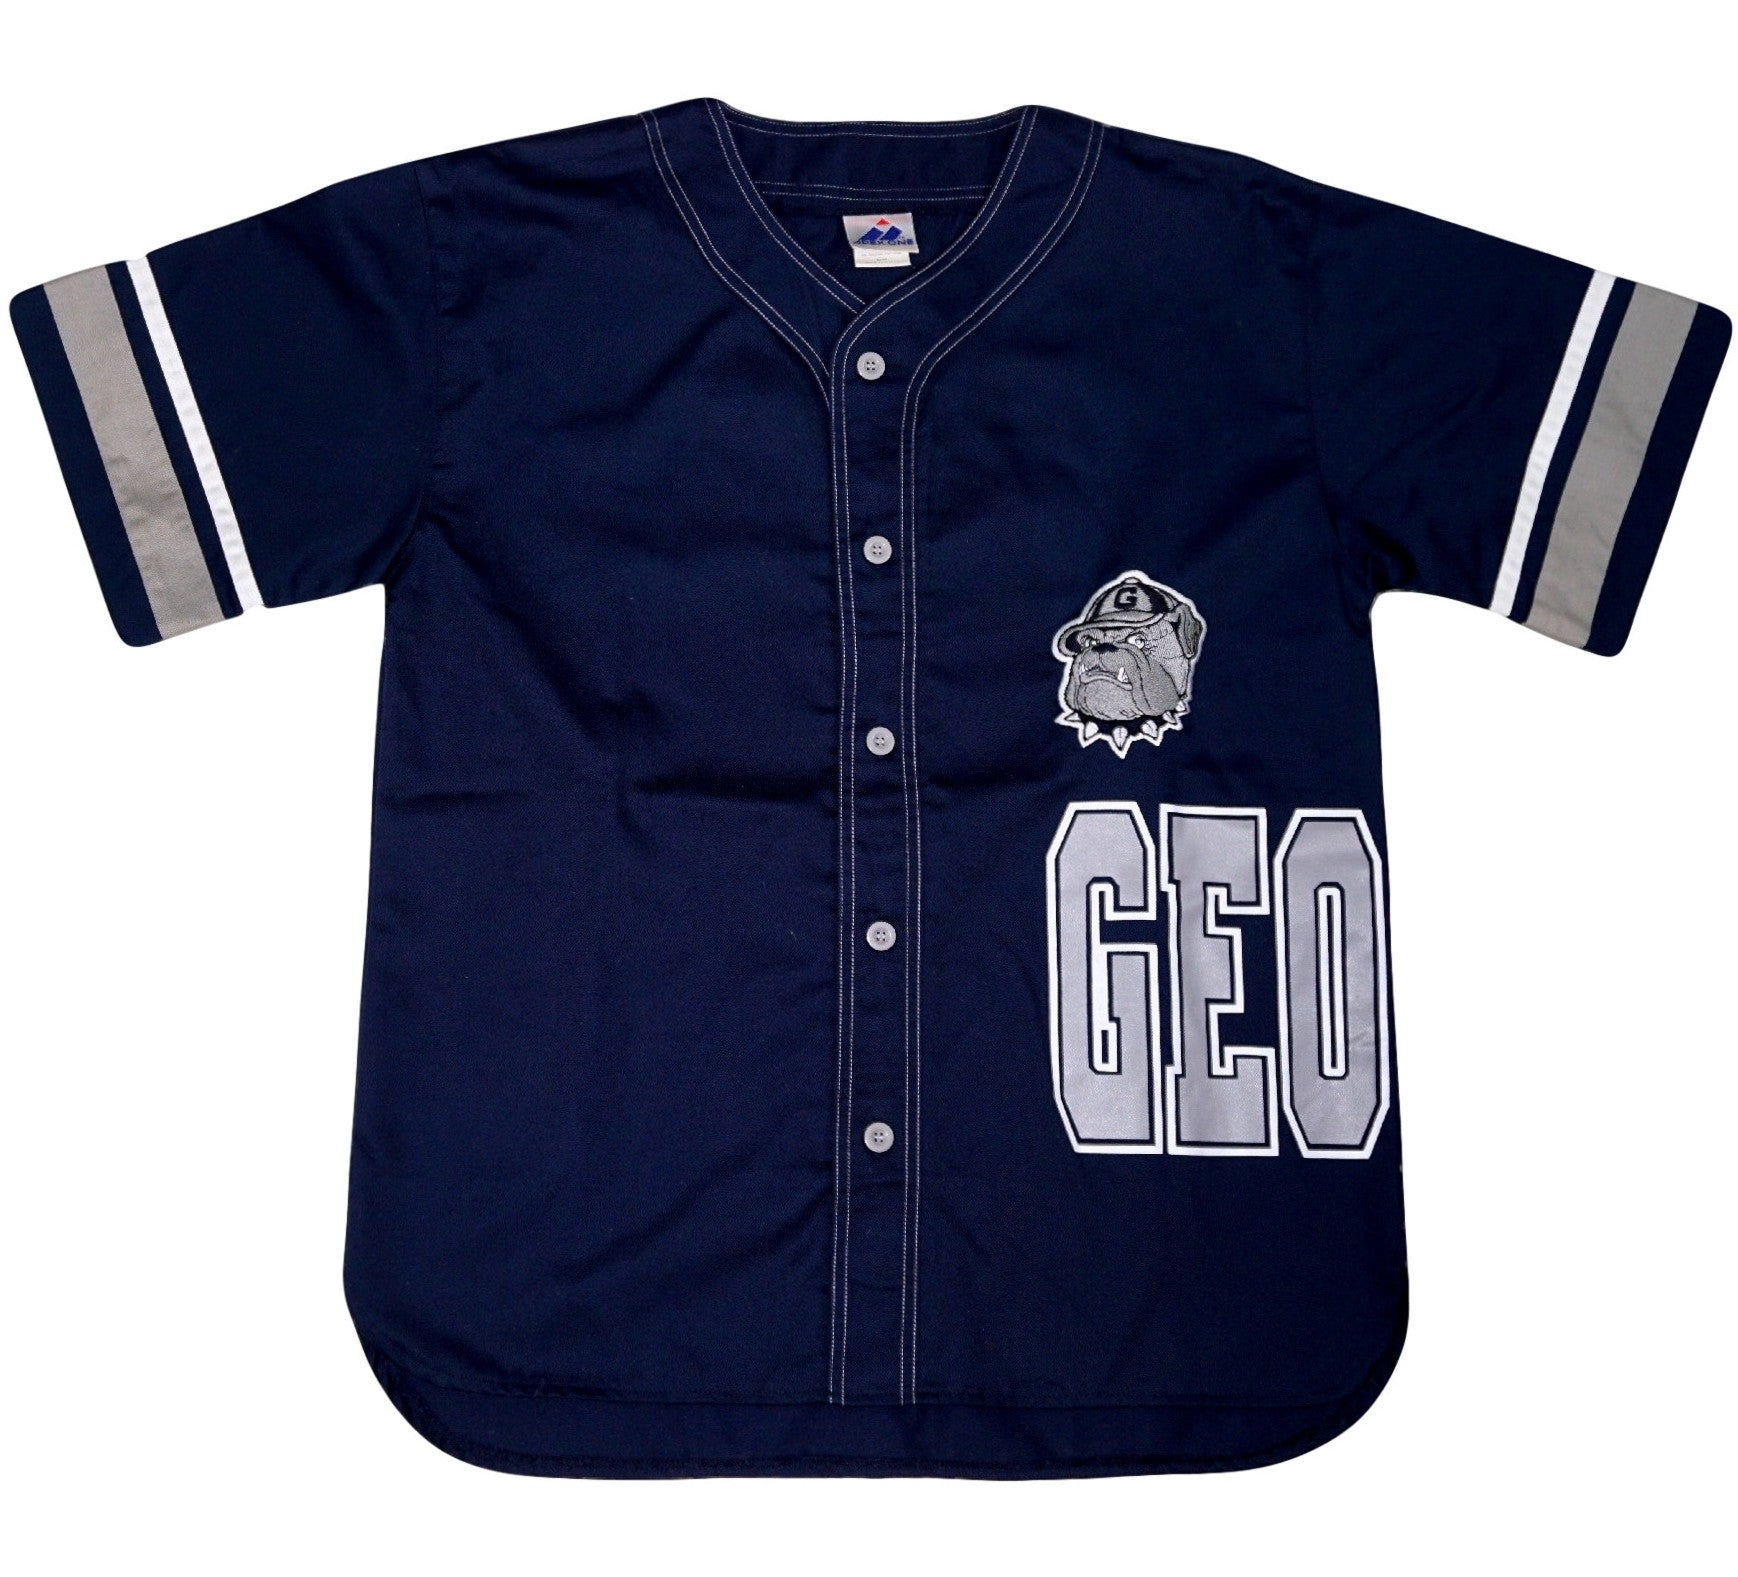 Hoyas Vintage Apex One Jersey - And Still